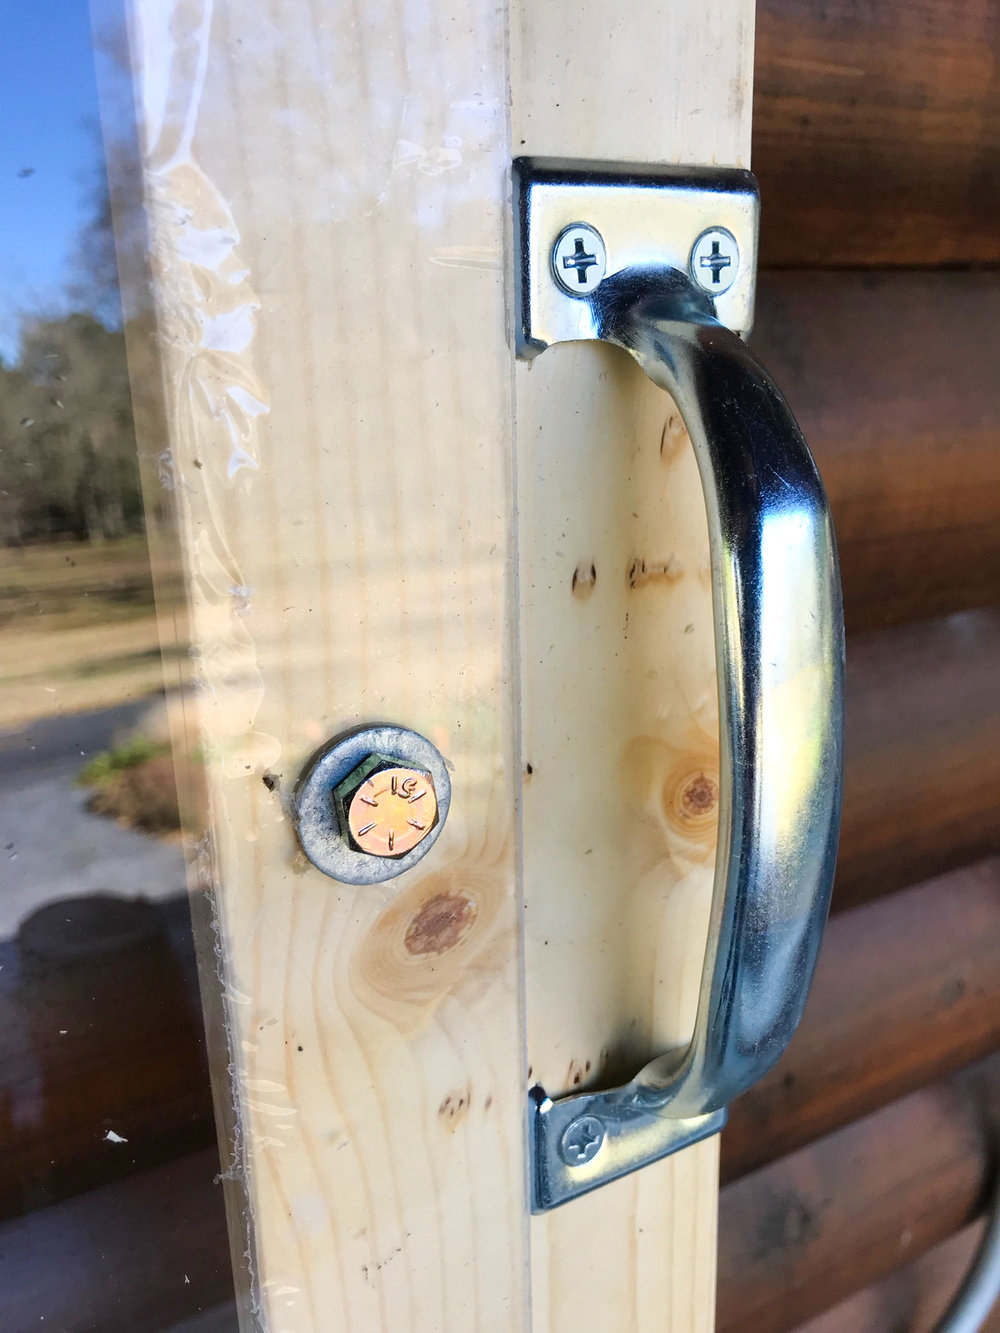 A bolt and washer hold the plexiglass on the wooden frame, and to the right is a handle for the light.